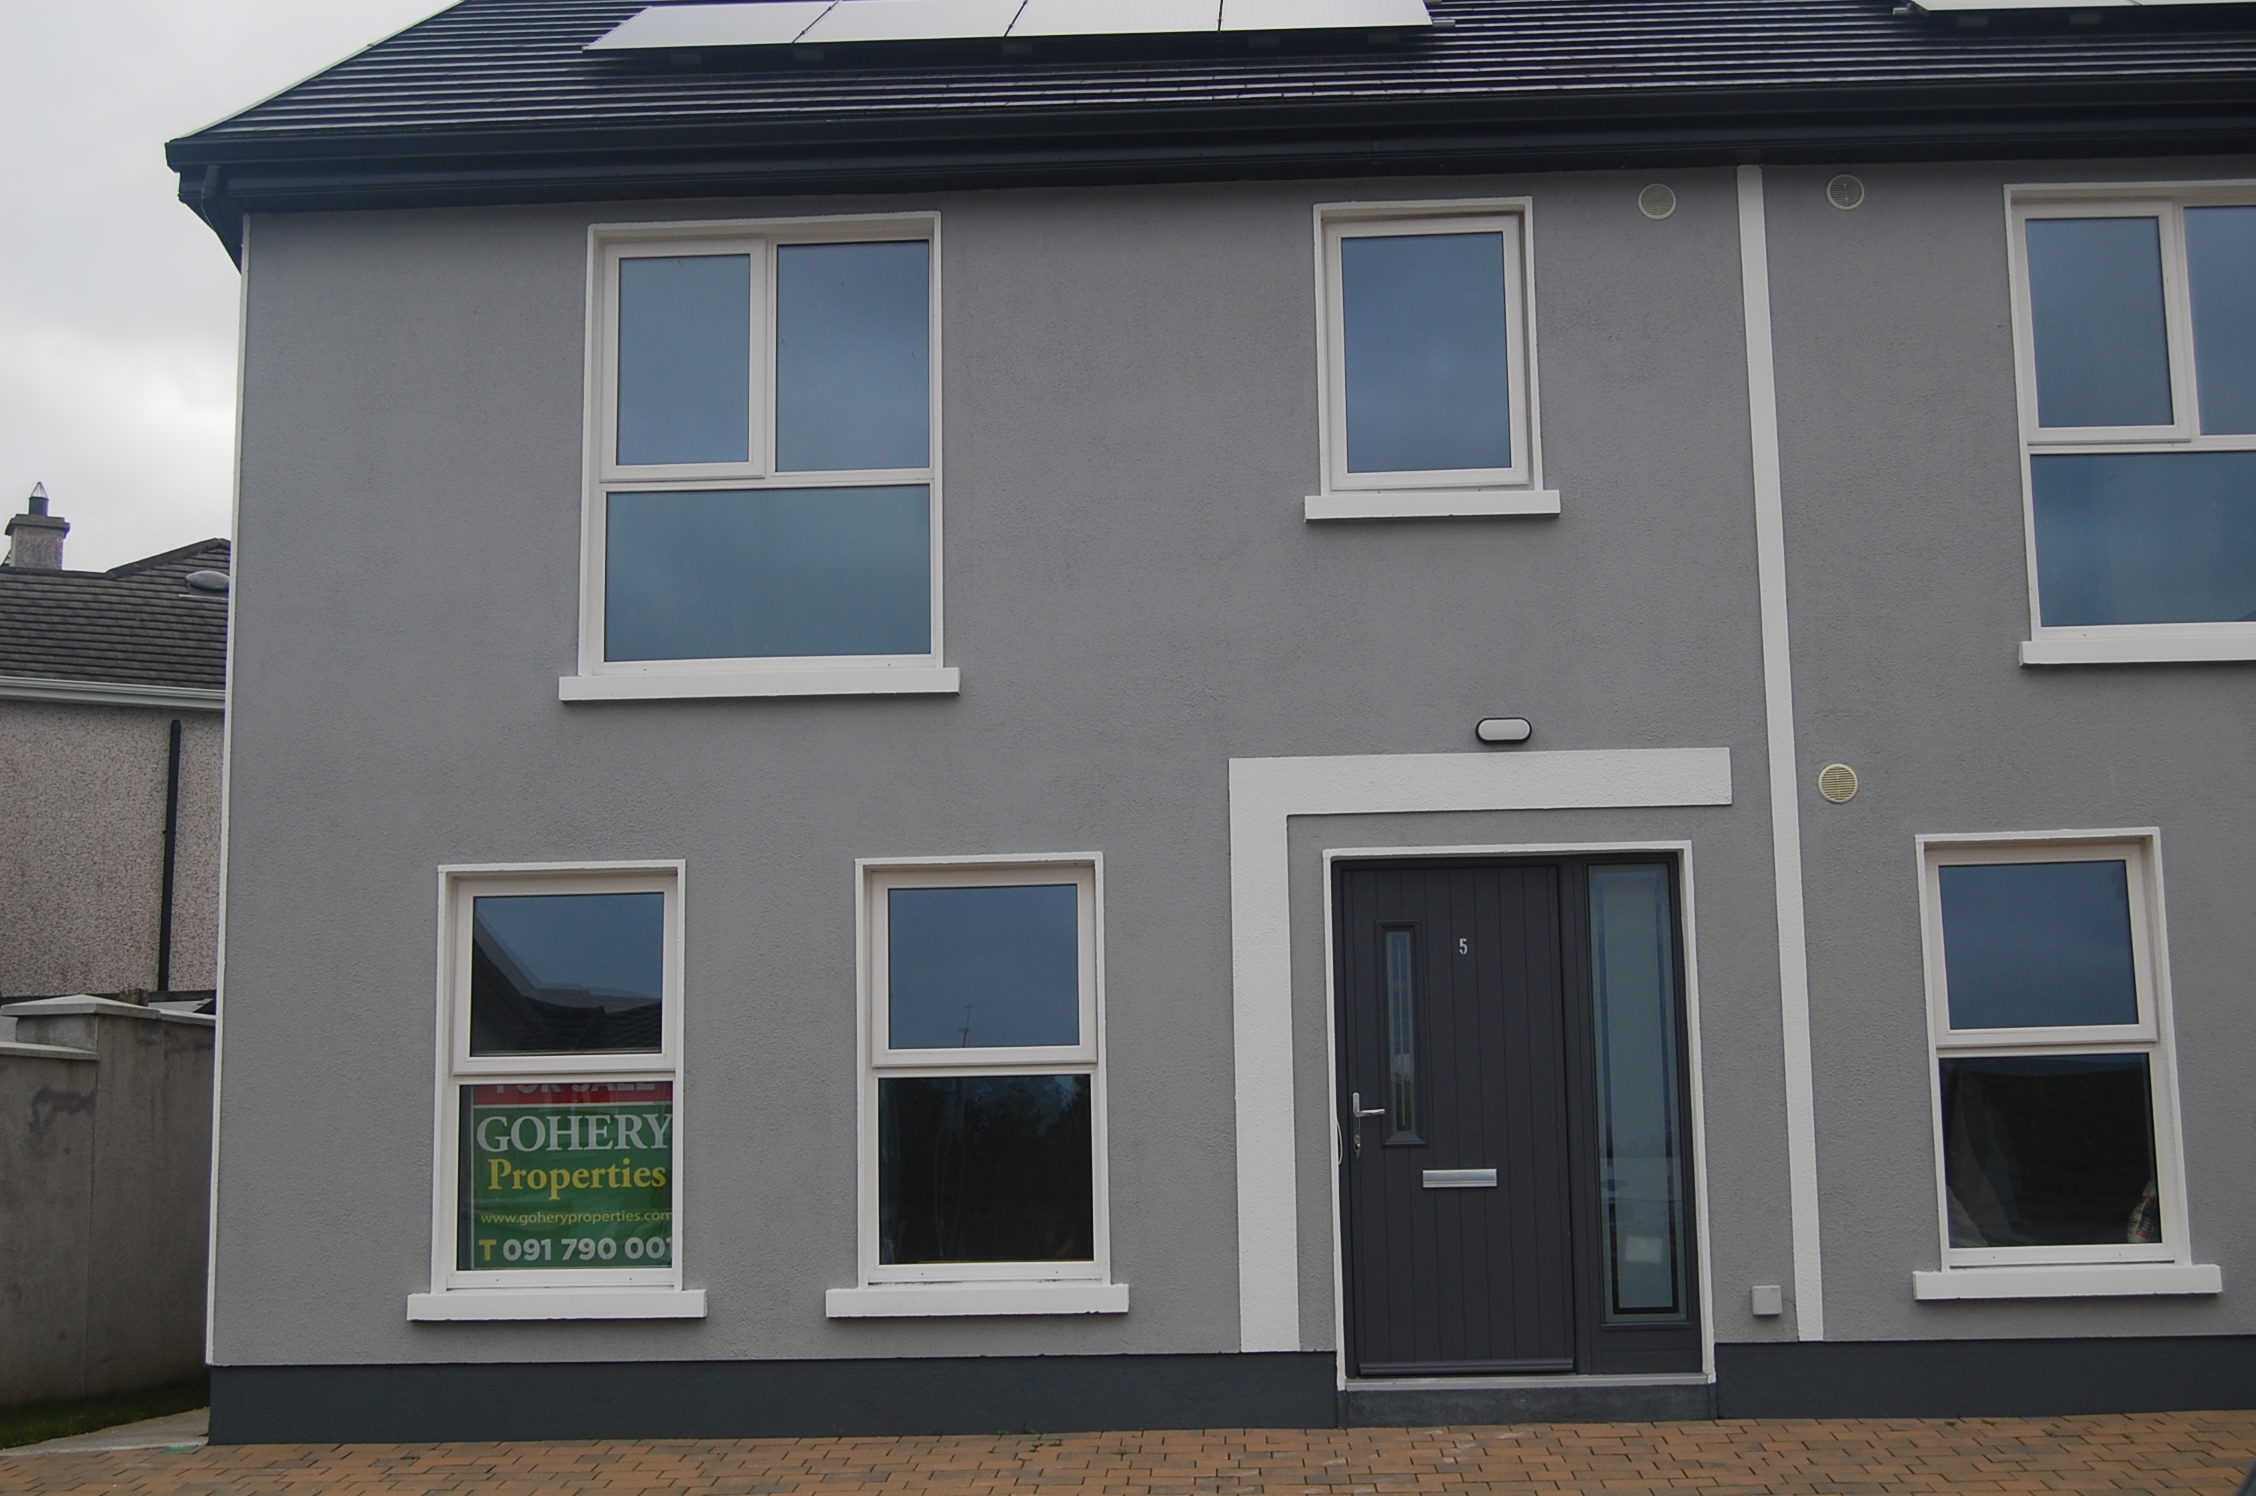 5 Durabhan Beag, Roscam, Galway City H91 K6HY